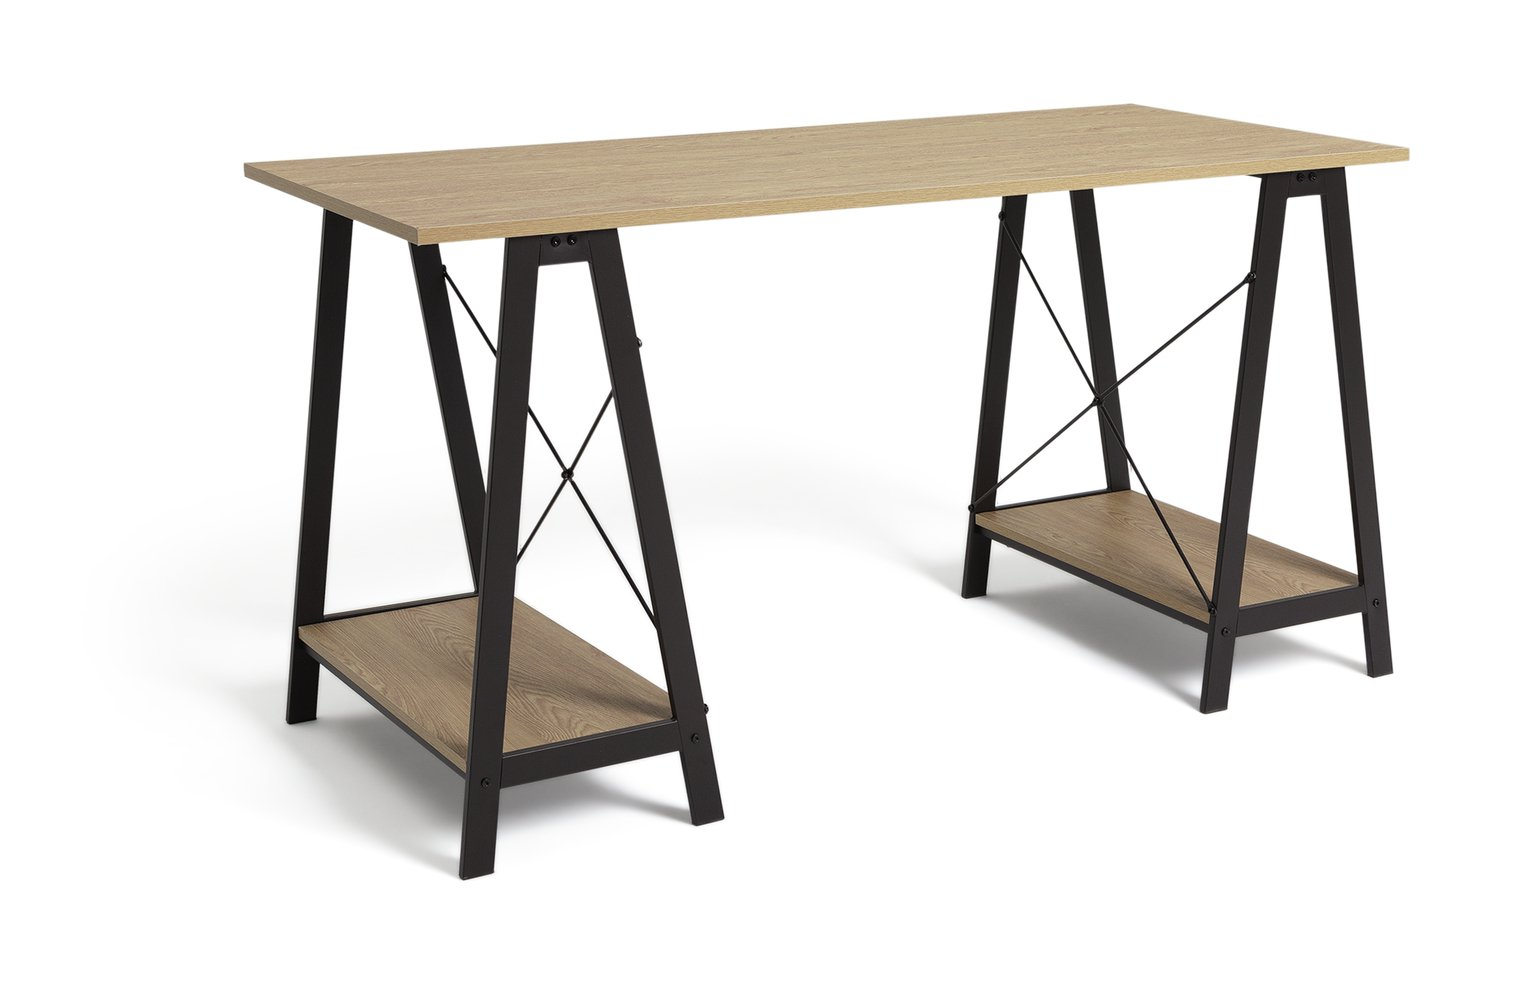 Sale On Home  Large Trestle Table  Desk  Argos Home. Table With Stools Underneath. Desk Pad Target. Power Desk. Desk Lamp Diy. Kidcraft Table. Snooker Tables. Air Powered Hockey Table. Cheap Desks For Bedroom